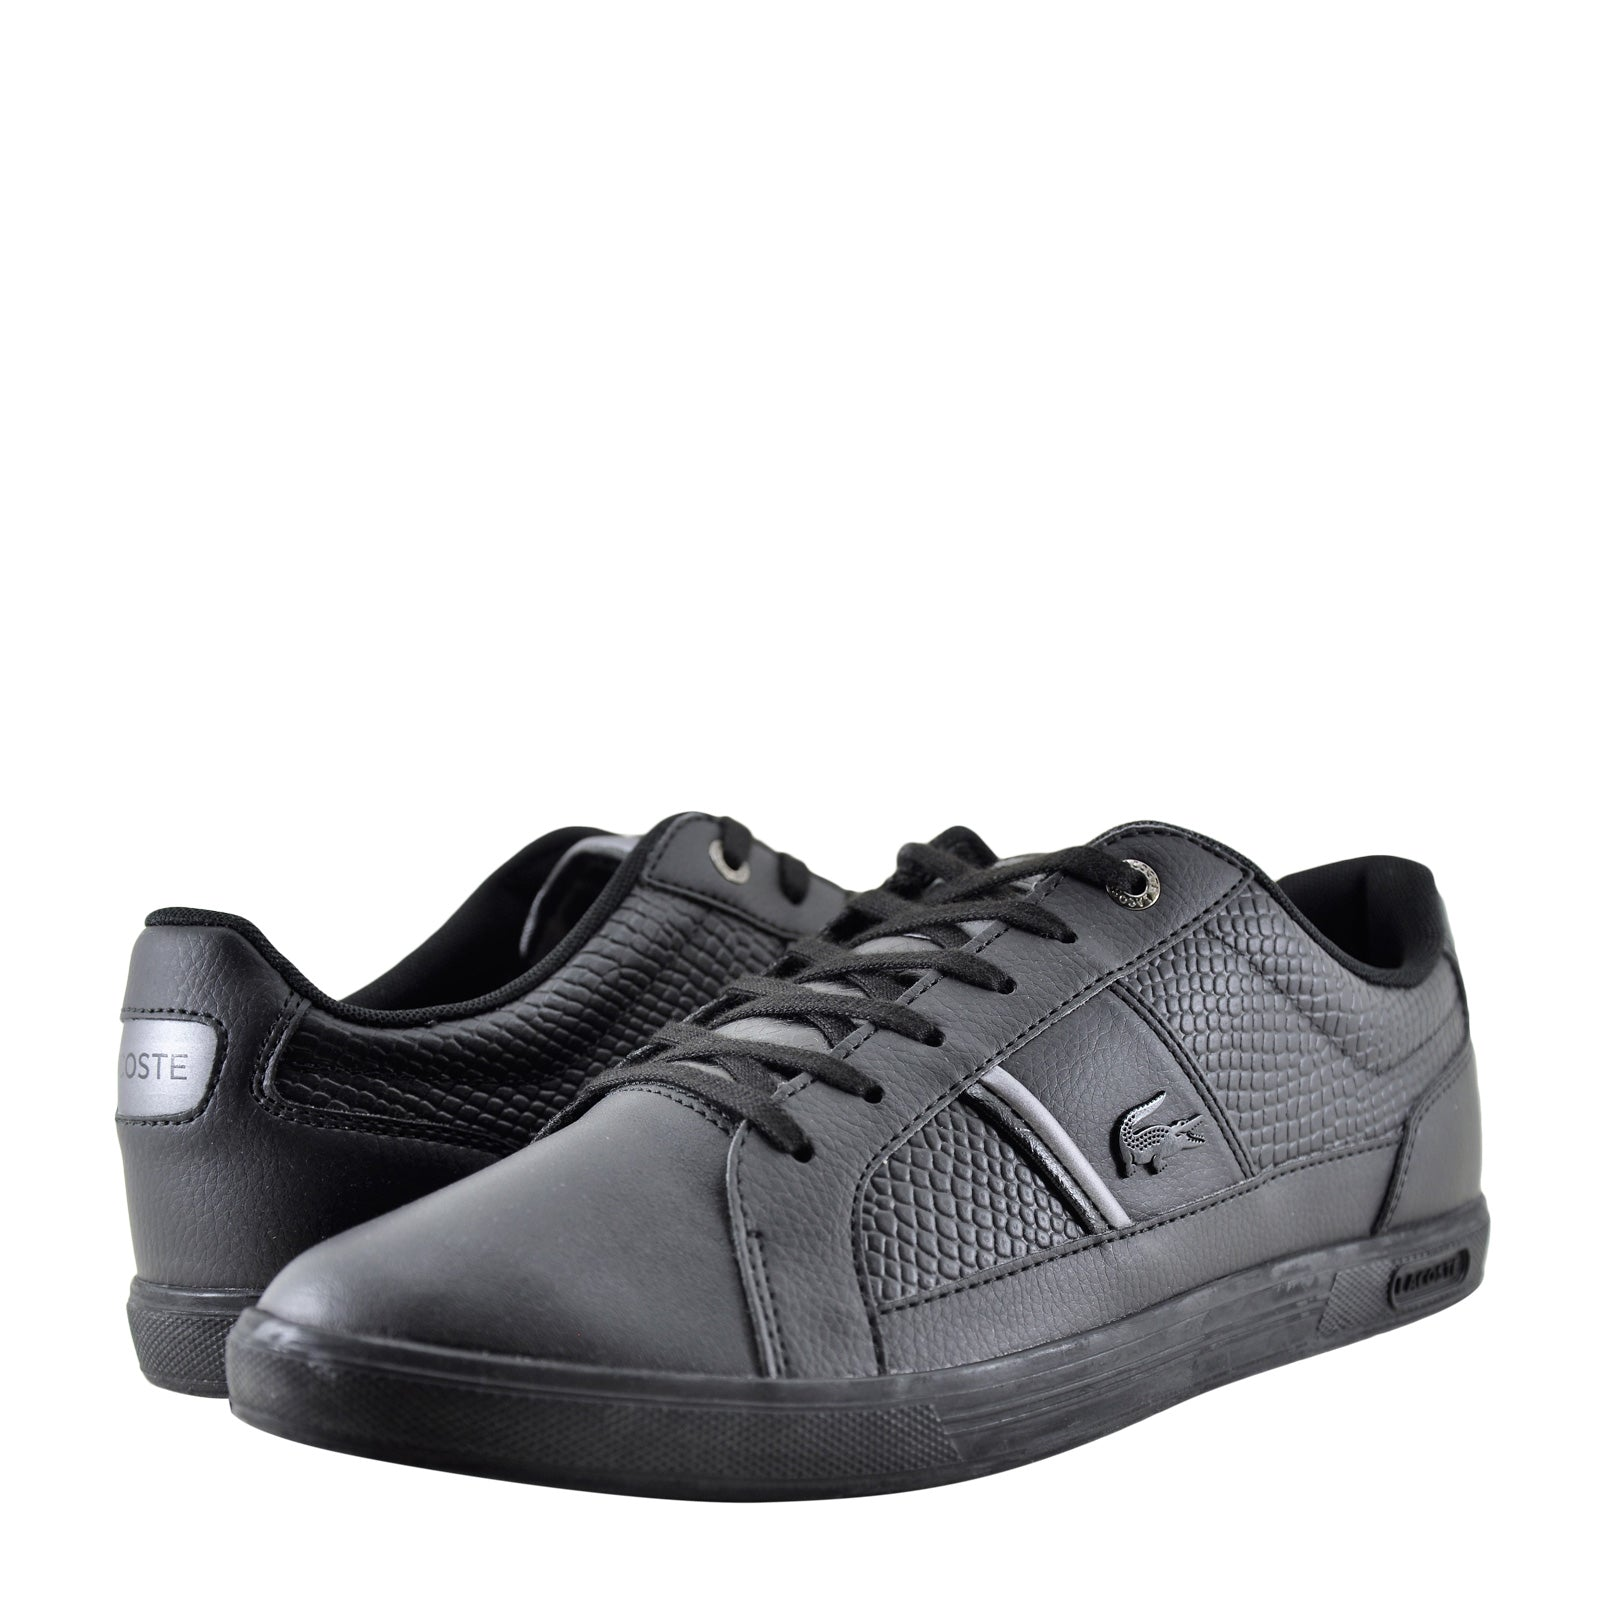 3641c061a Lacoste Europa 417 – Milano Shoes